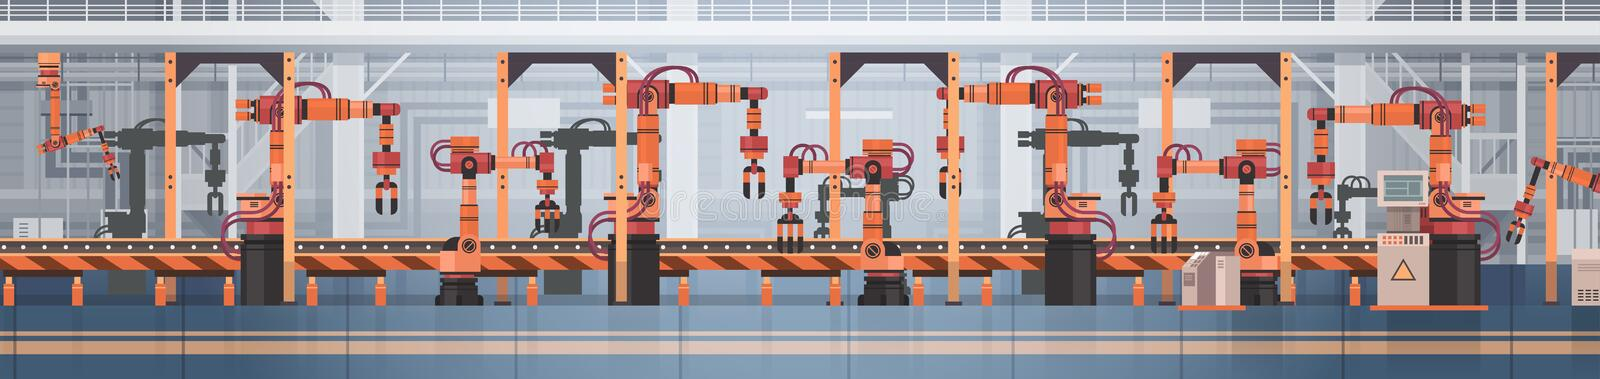 Factory Production Conveyor Automatic Assembly Line Machinery Industrial Automation Industry Concept stock illustration